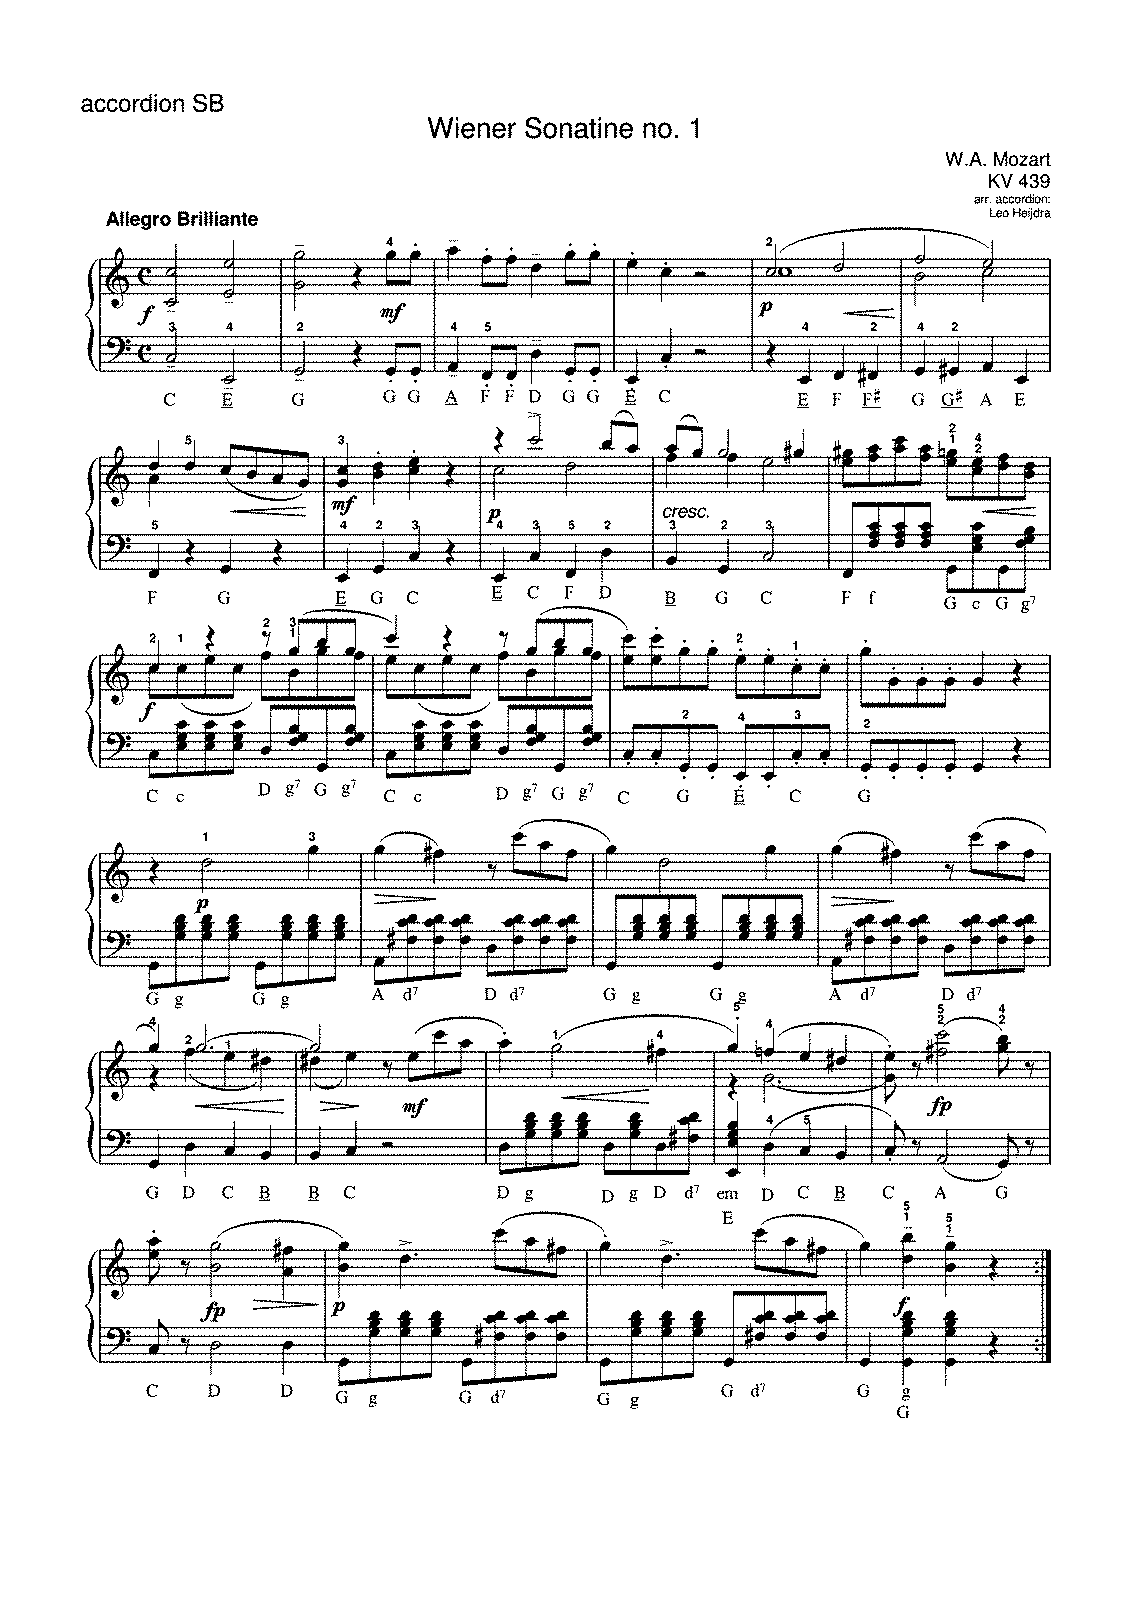 PMLP107451-Mozart - Wiener Sonatine no 1- accordion .pdf